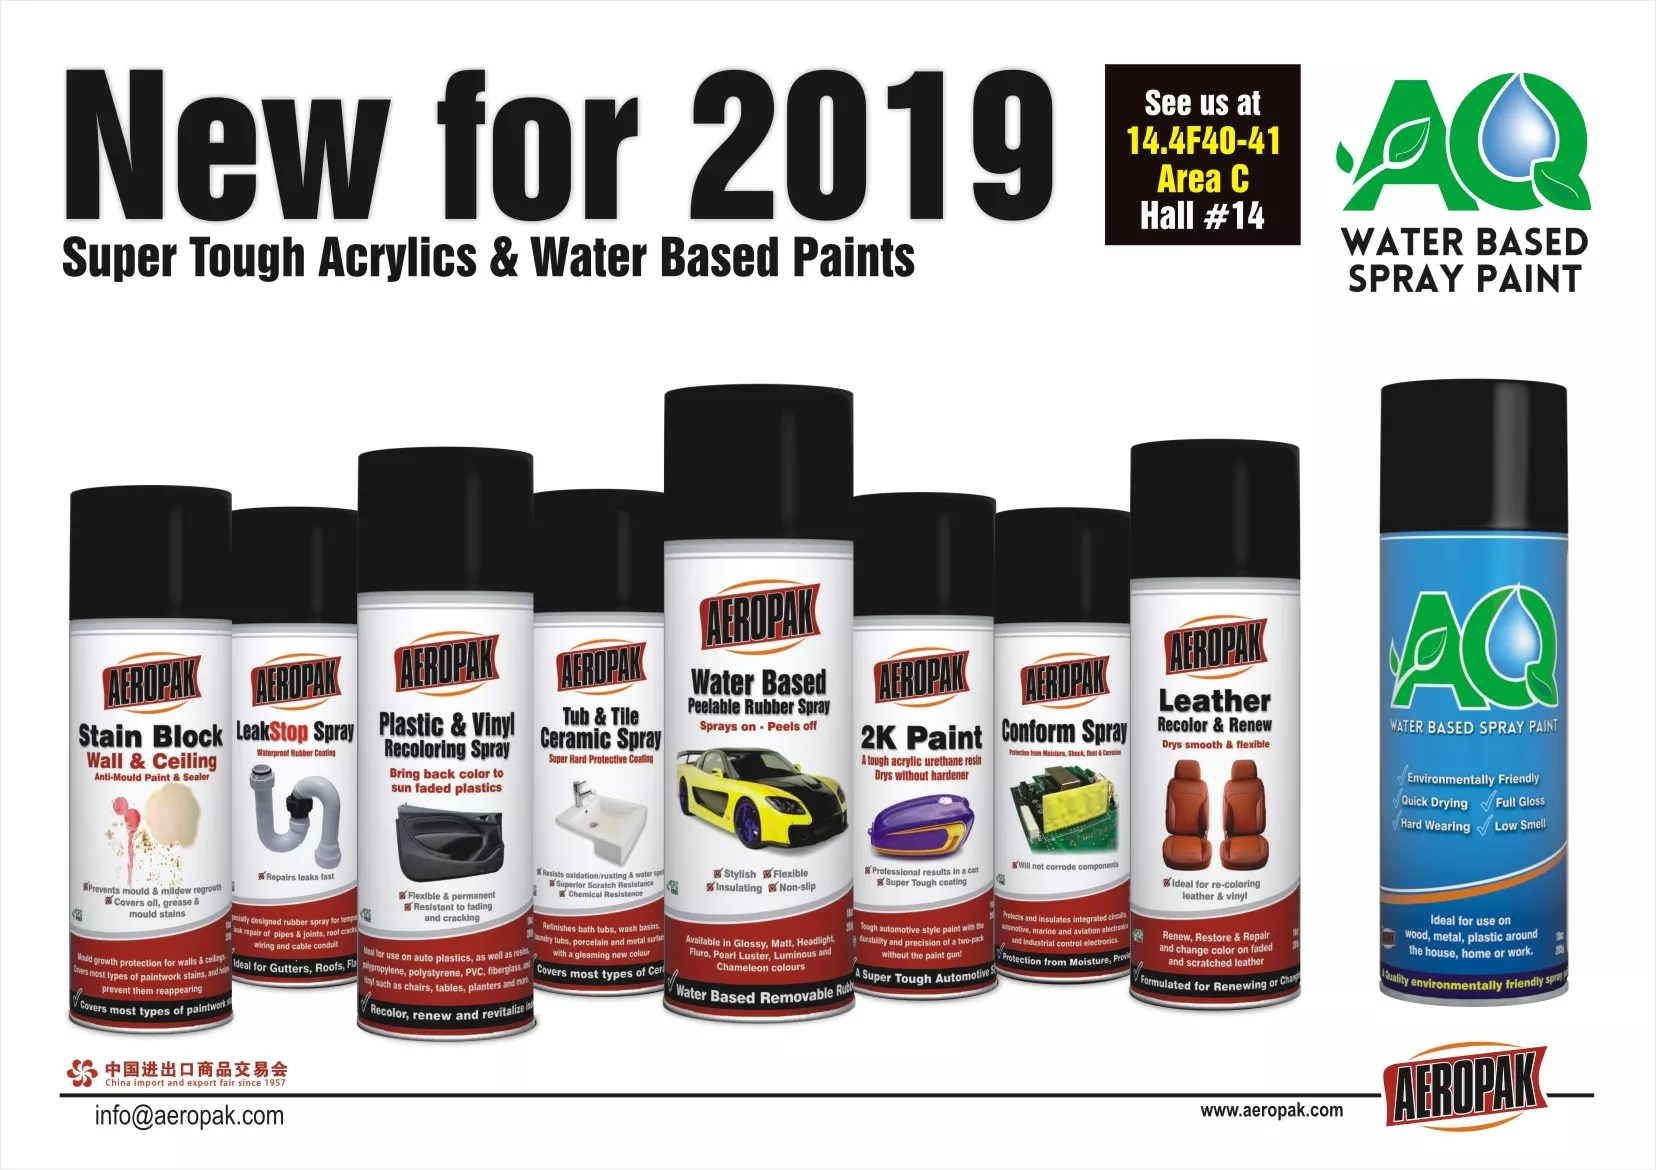 tub and tile refinishing paint bright white aerosol spray buy tub and tile refinishing paint tub and tile spray paint tub and tile aerosol product